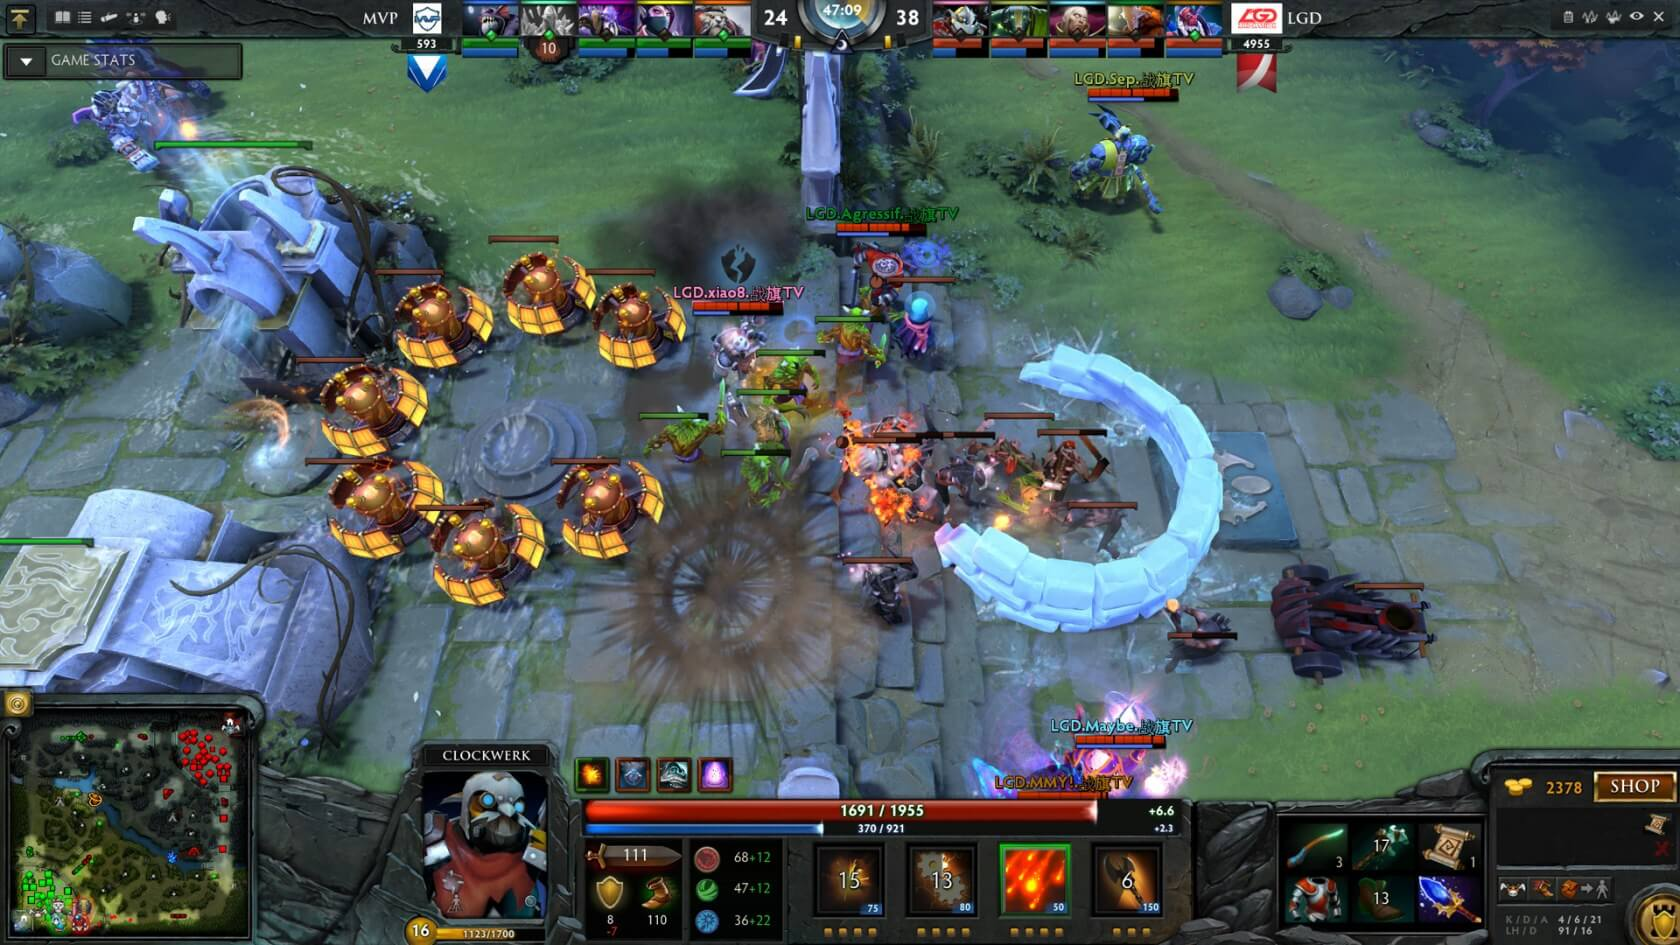 OpenAI has a Dota 2 team consisting of self-taught bots than can beat top amateur teams